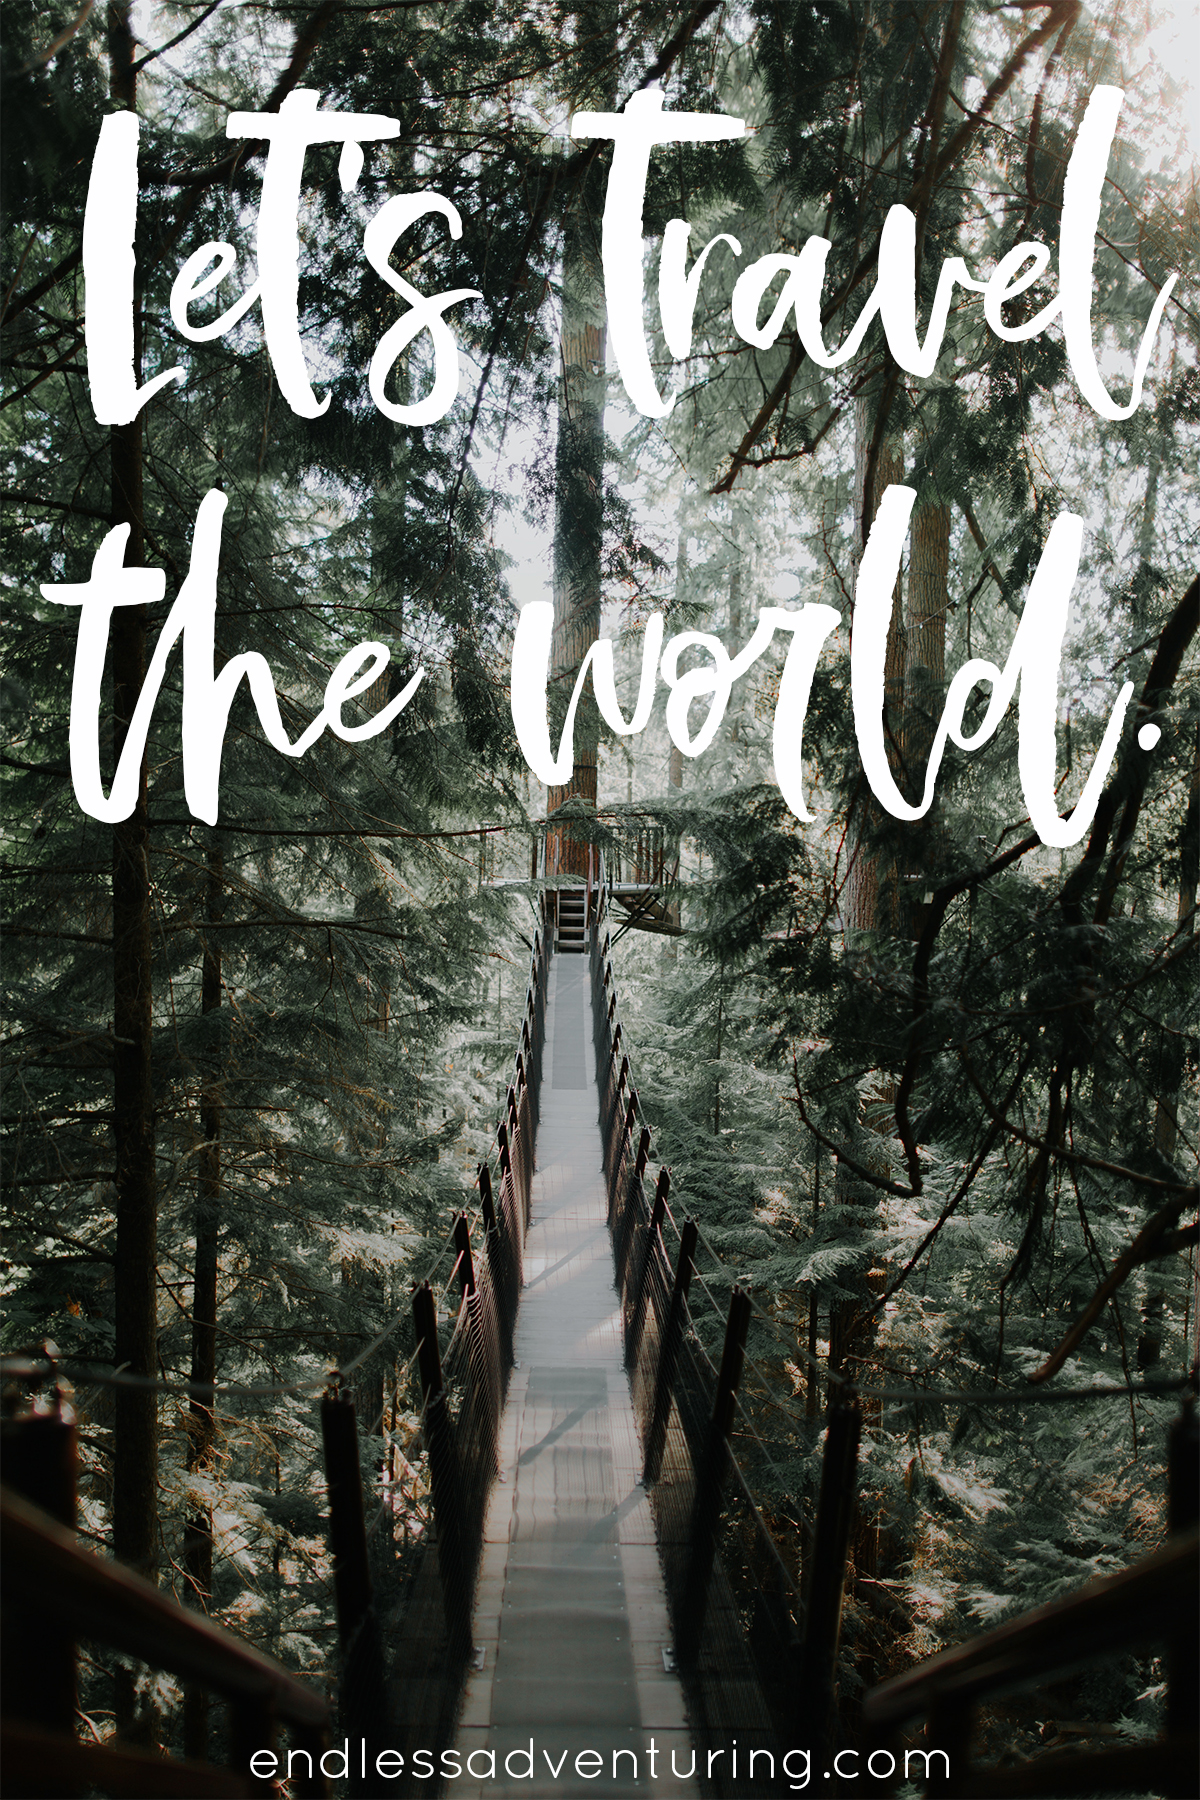 Adventure Quote - Let's Travel The World